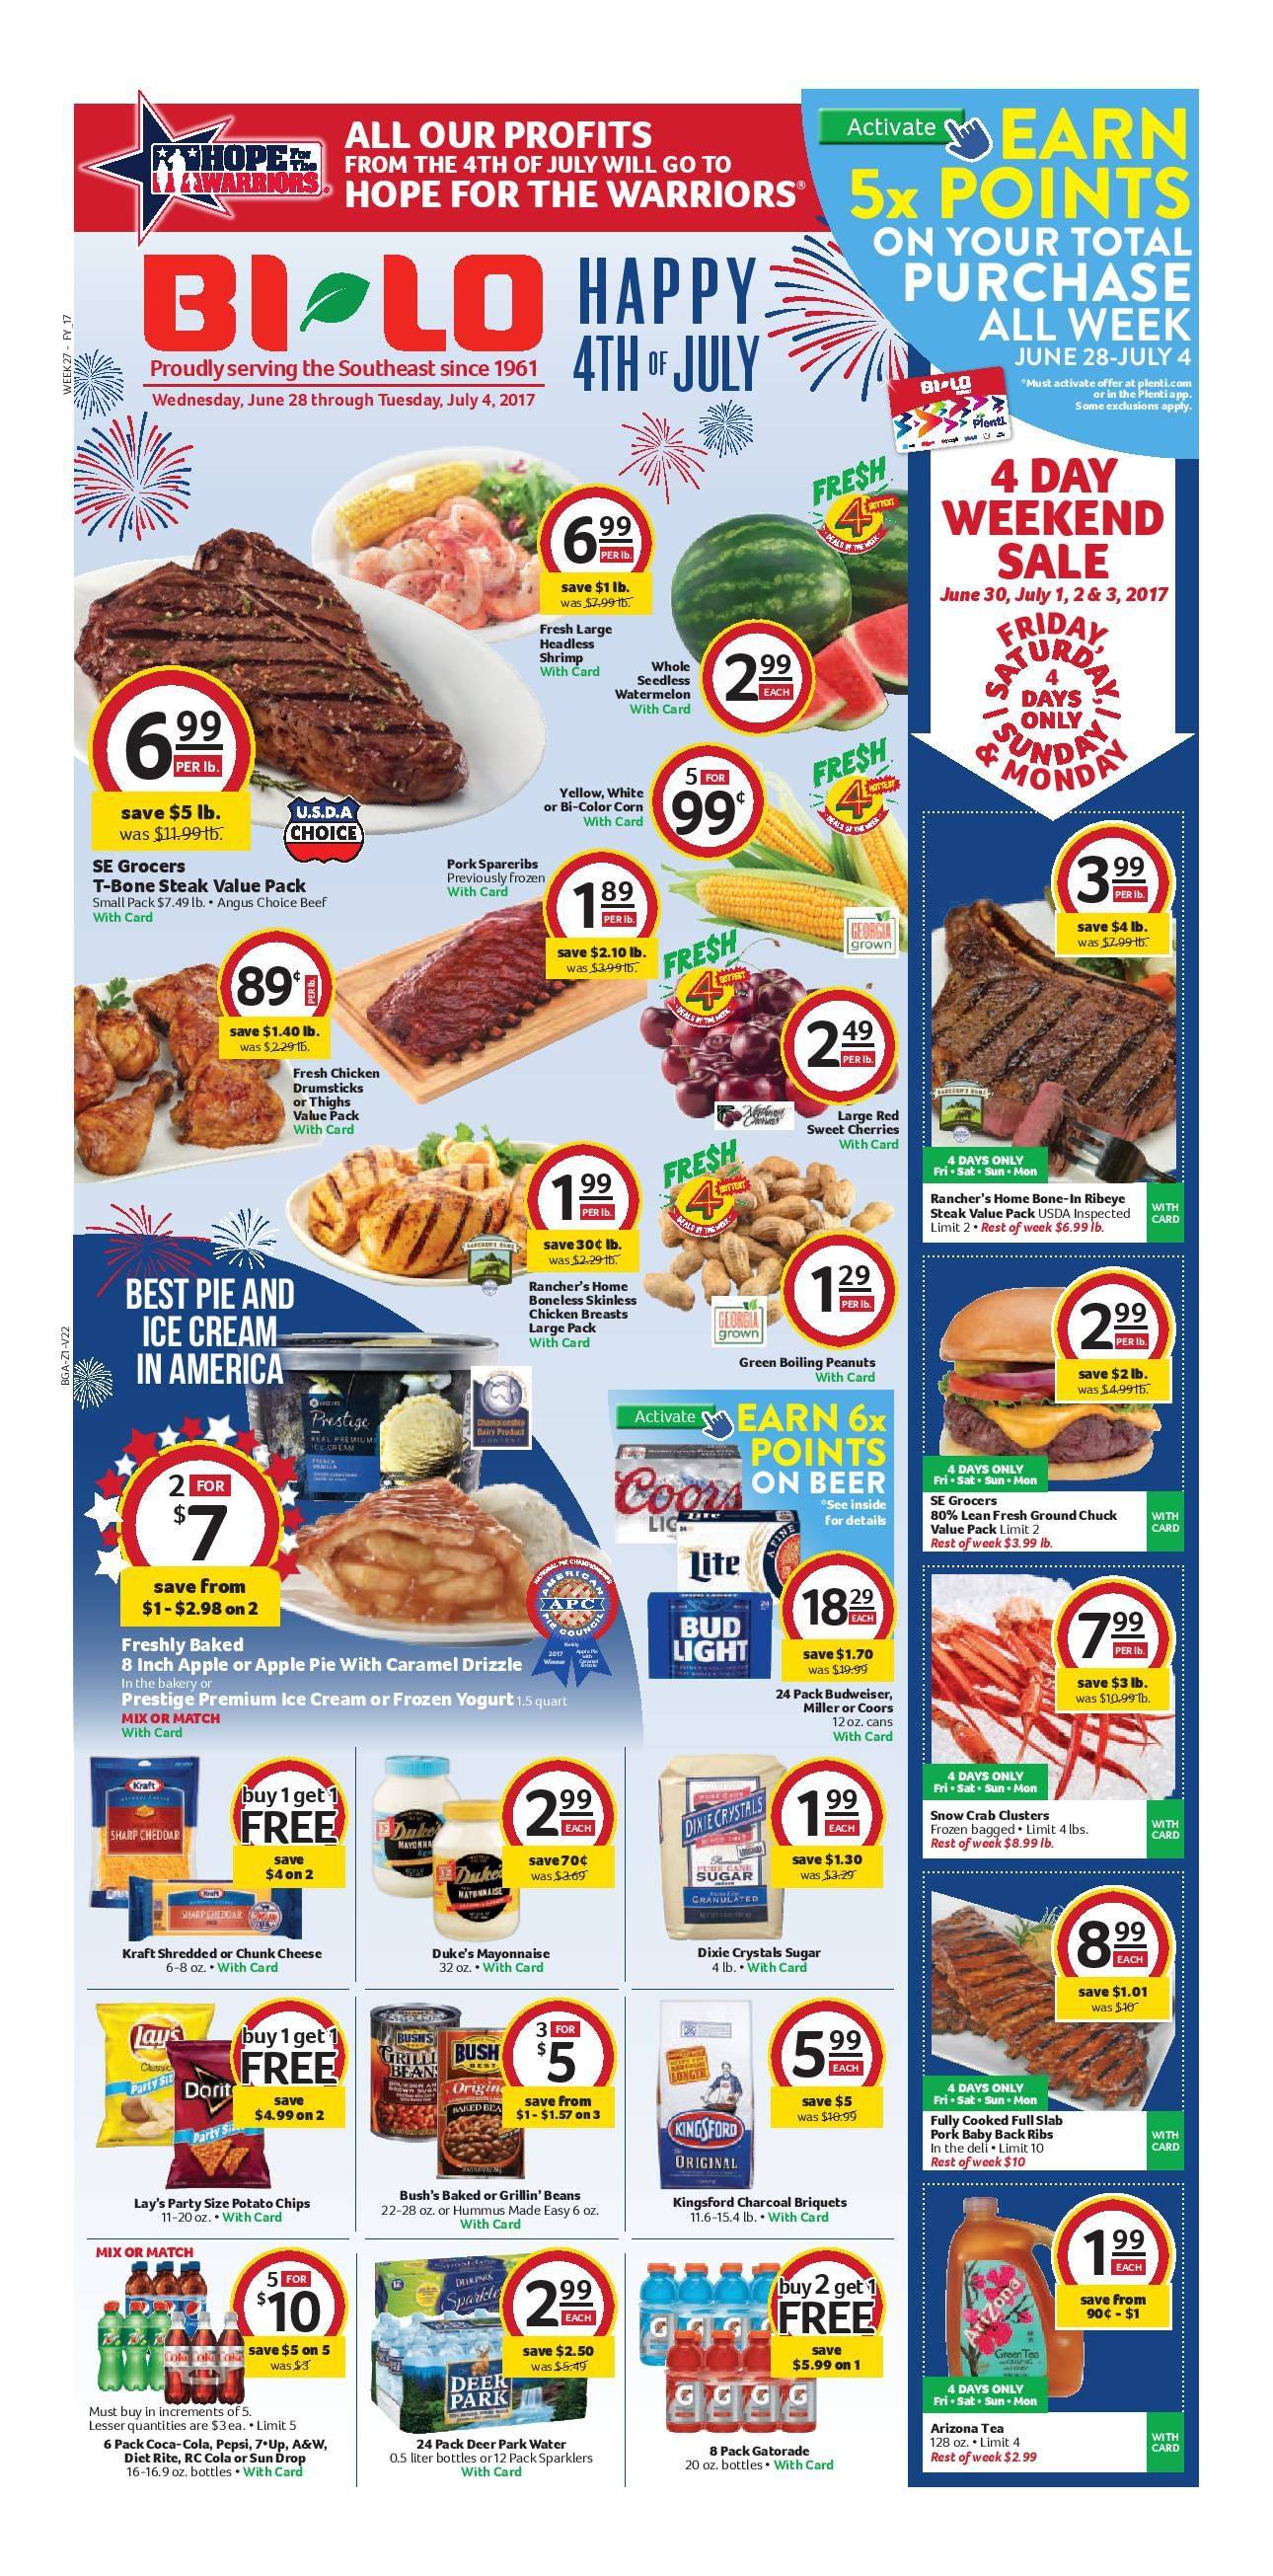 Bilo Weekly Ad June 28 July 4 2017 Bilo Grocery weekly ad